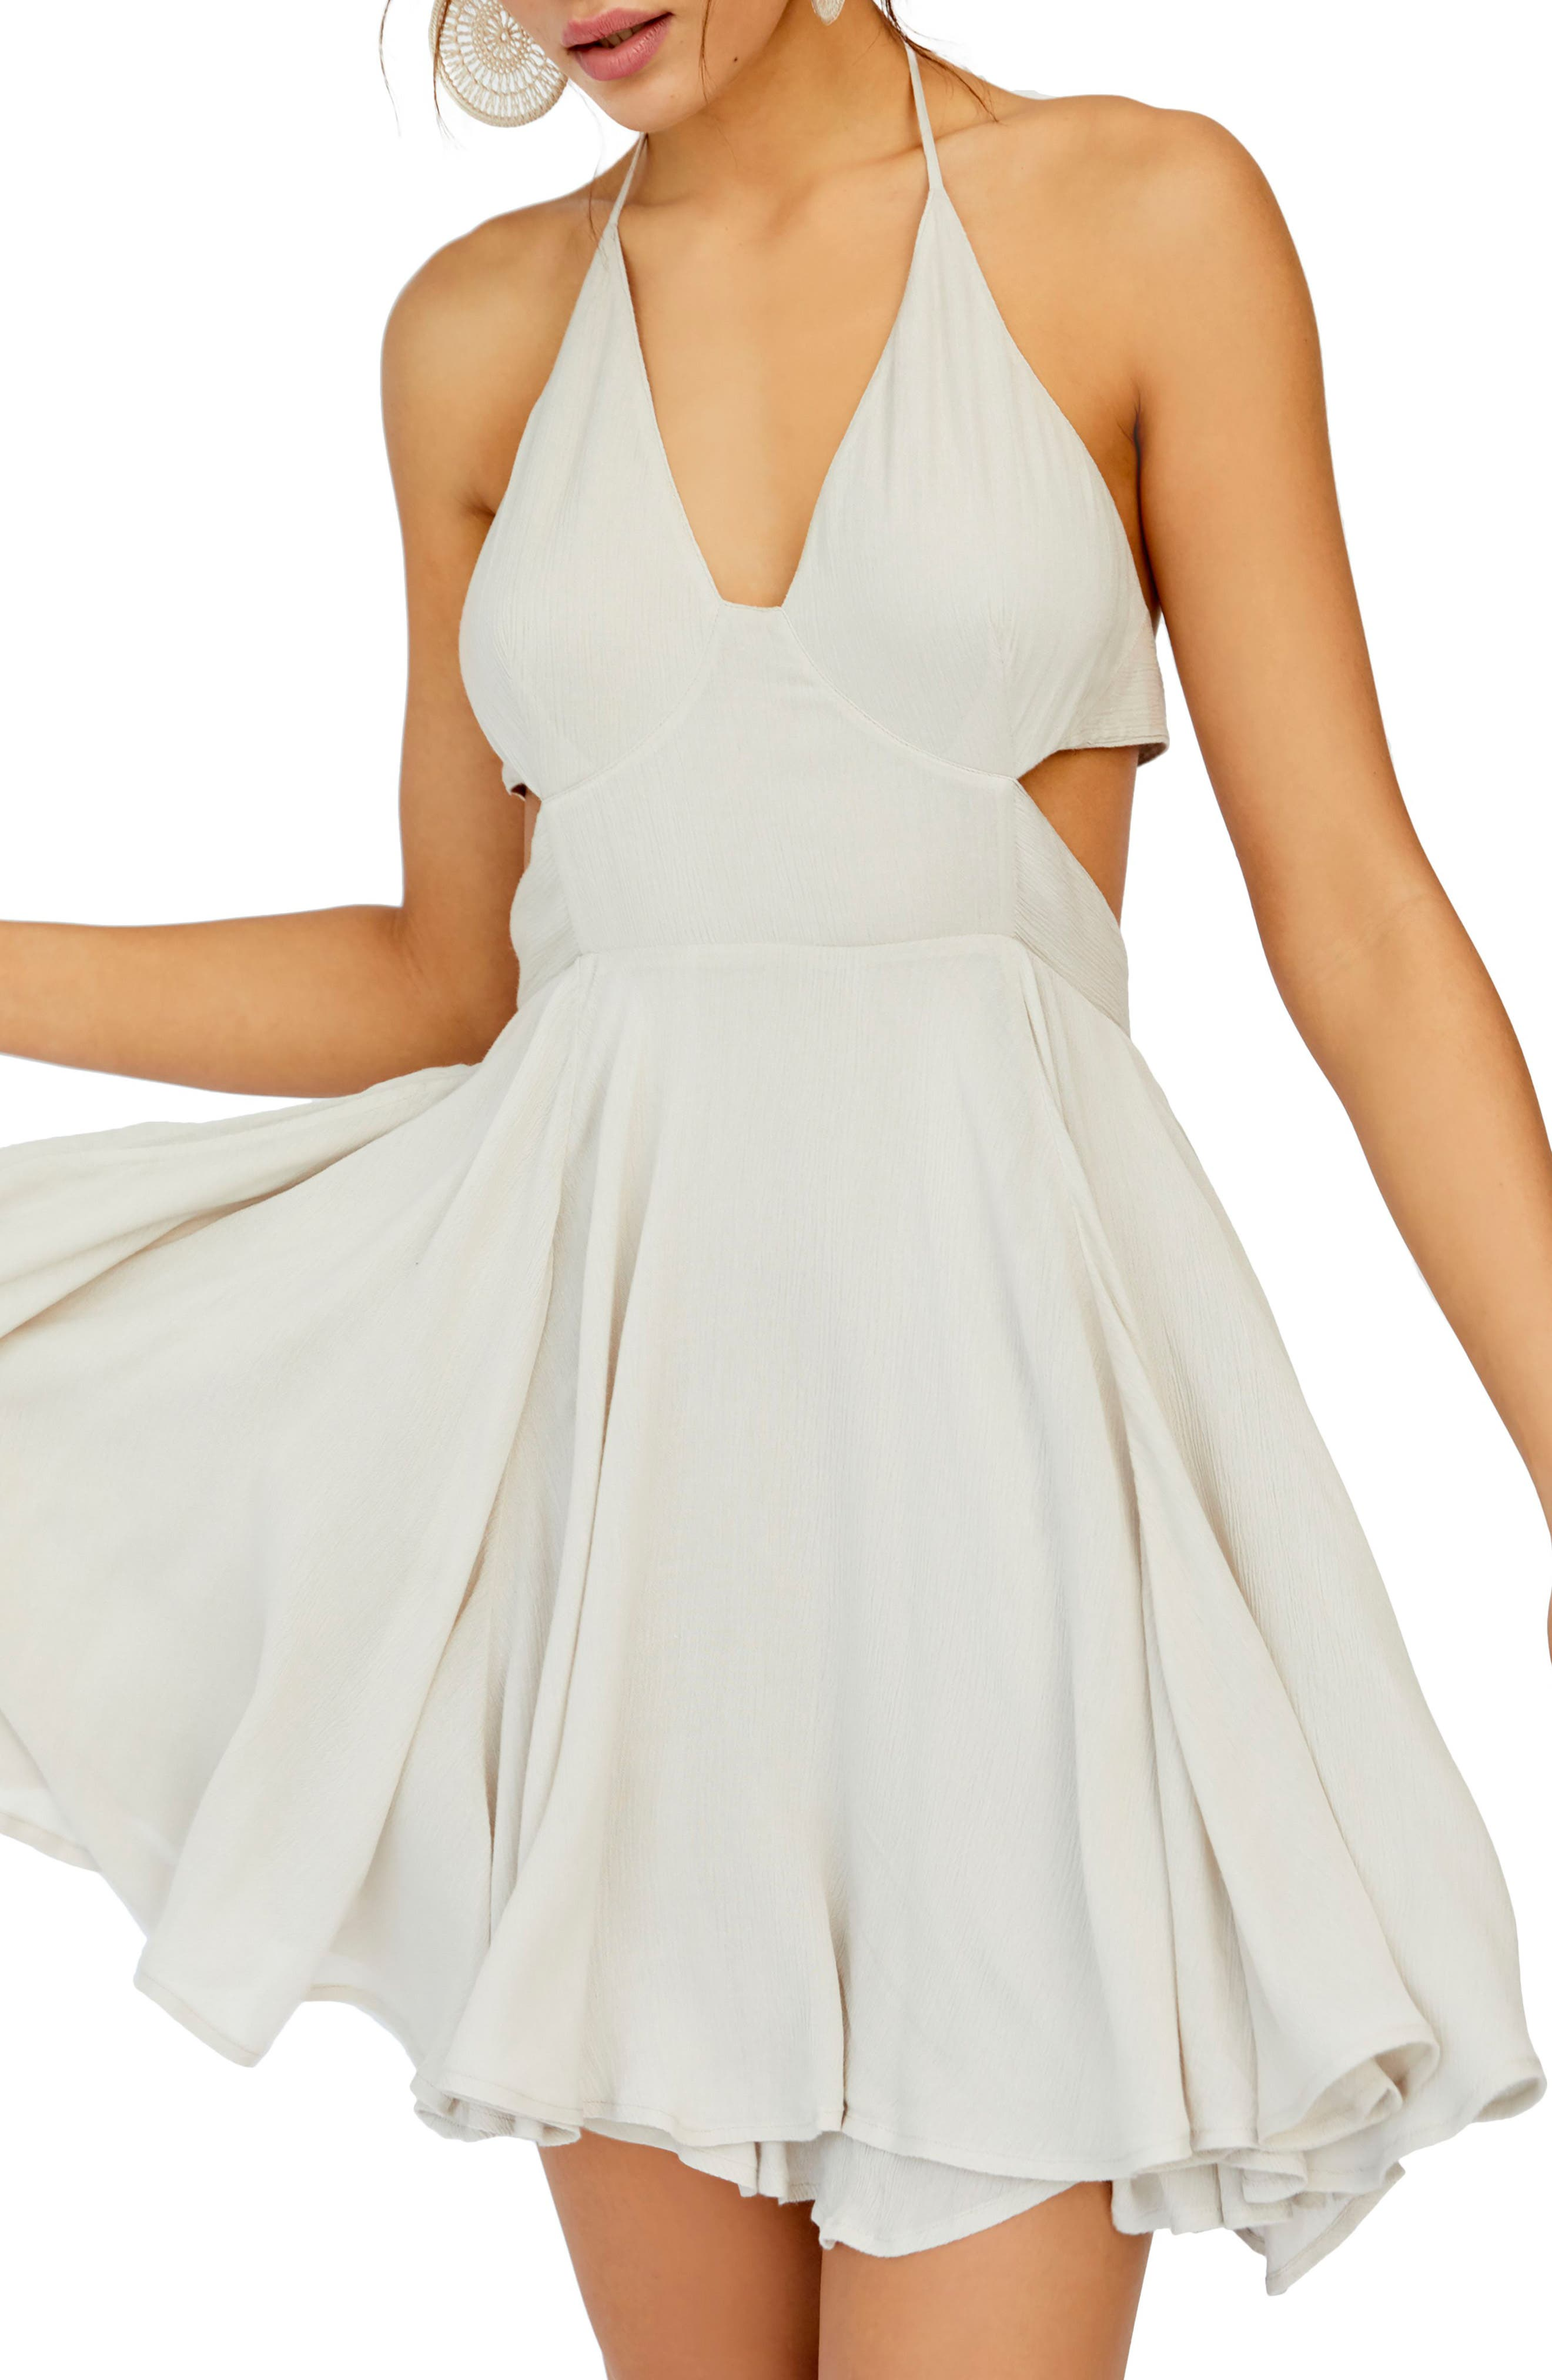 Endless Summer By Free People Lillie Halter Minidress, Ivory